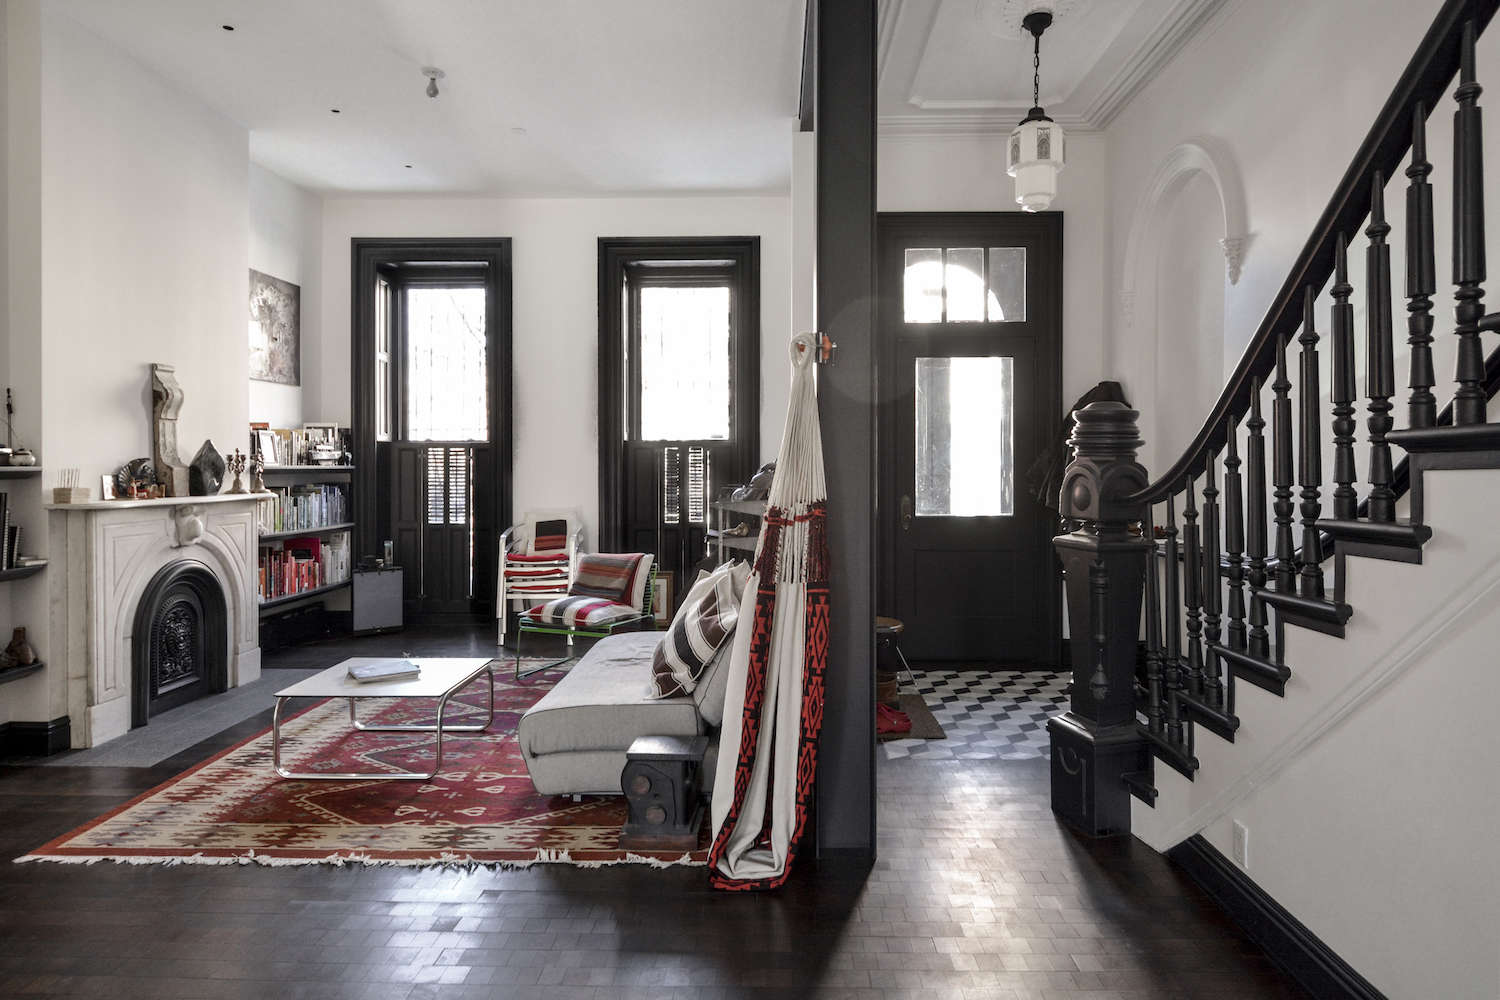 architects gregory merkel and catalina rojas's remodeled brooklyn townhouse | r 15